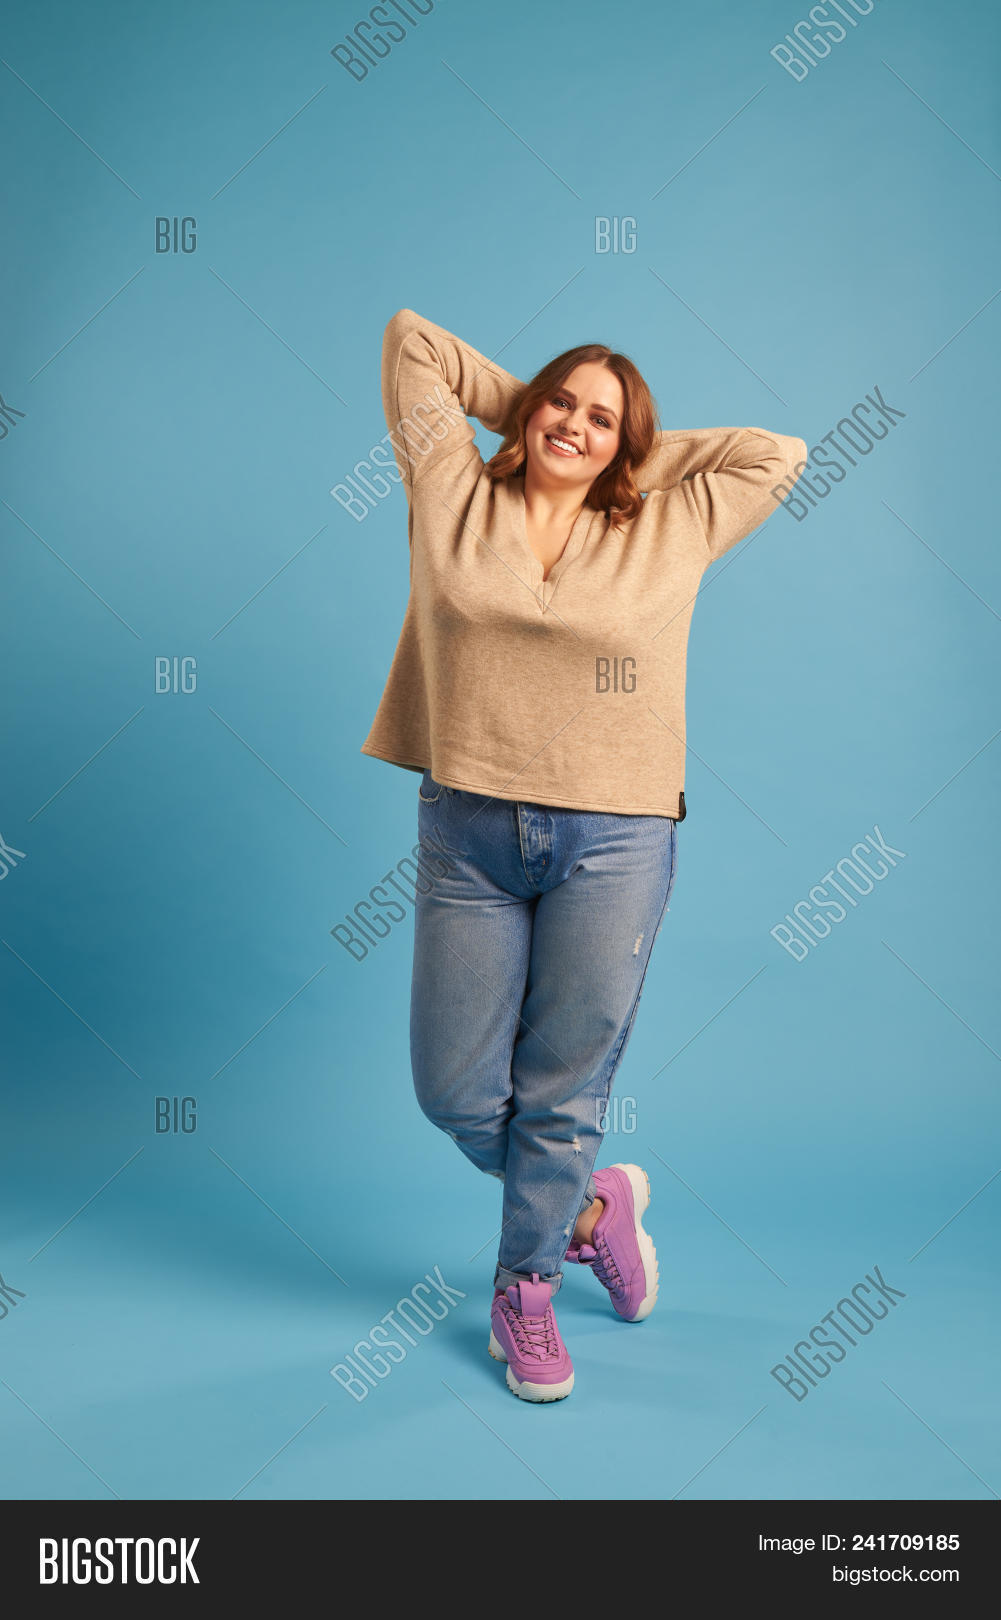 above,adult,alone,attractive,background,beautiful,beauty,big,blue,body,candid,casual,caucasian,clothes,curvy,fashion,fat,female,figure,girl,gorgeous,hair,hands,head,isolated,jeans,joyful,lifestyle,looking,lovely,model,one,overweight,pleasing,plus,plus-size,posing,pretty,size,sneakers,standing,studio,stylish,sweatshirt,voluptuous,wearing,weight,woman,young